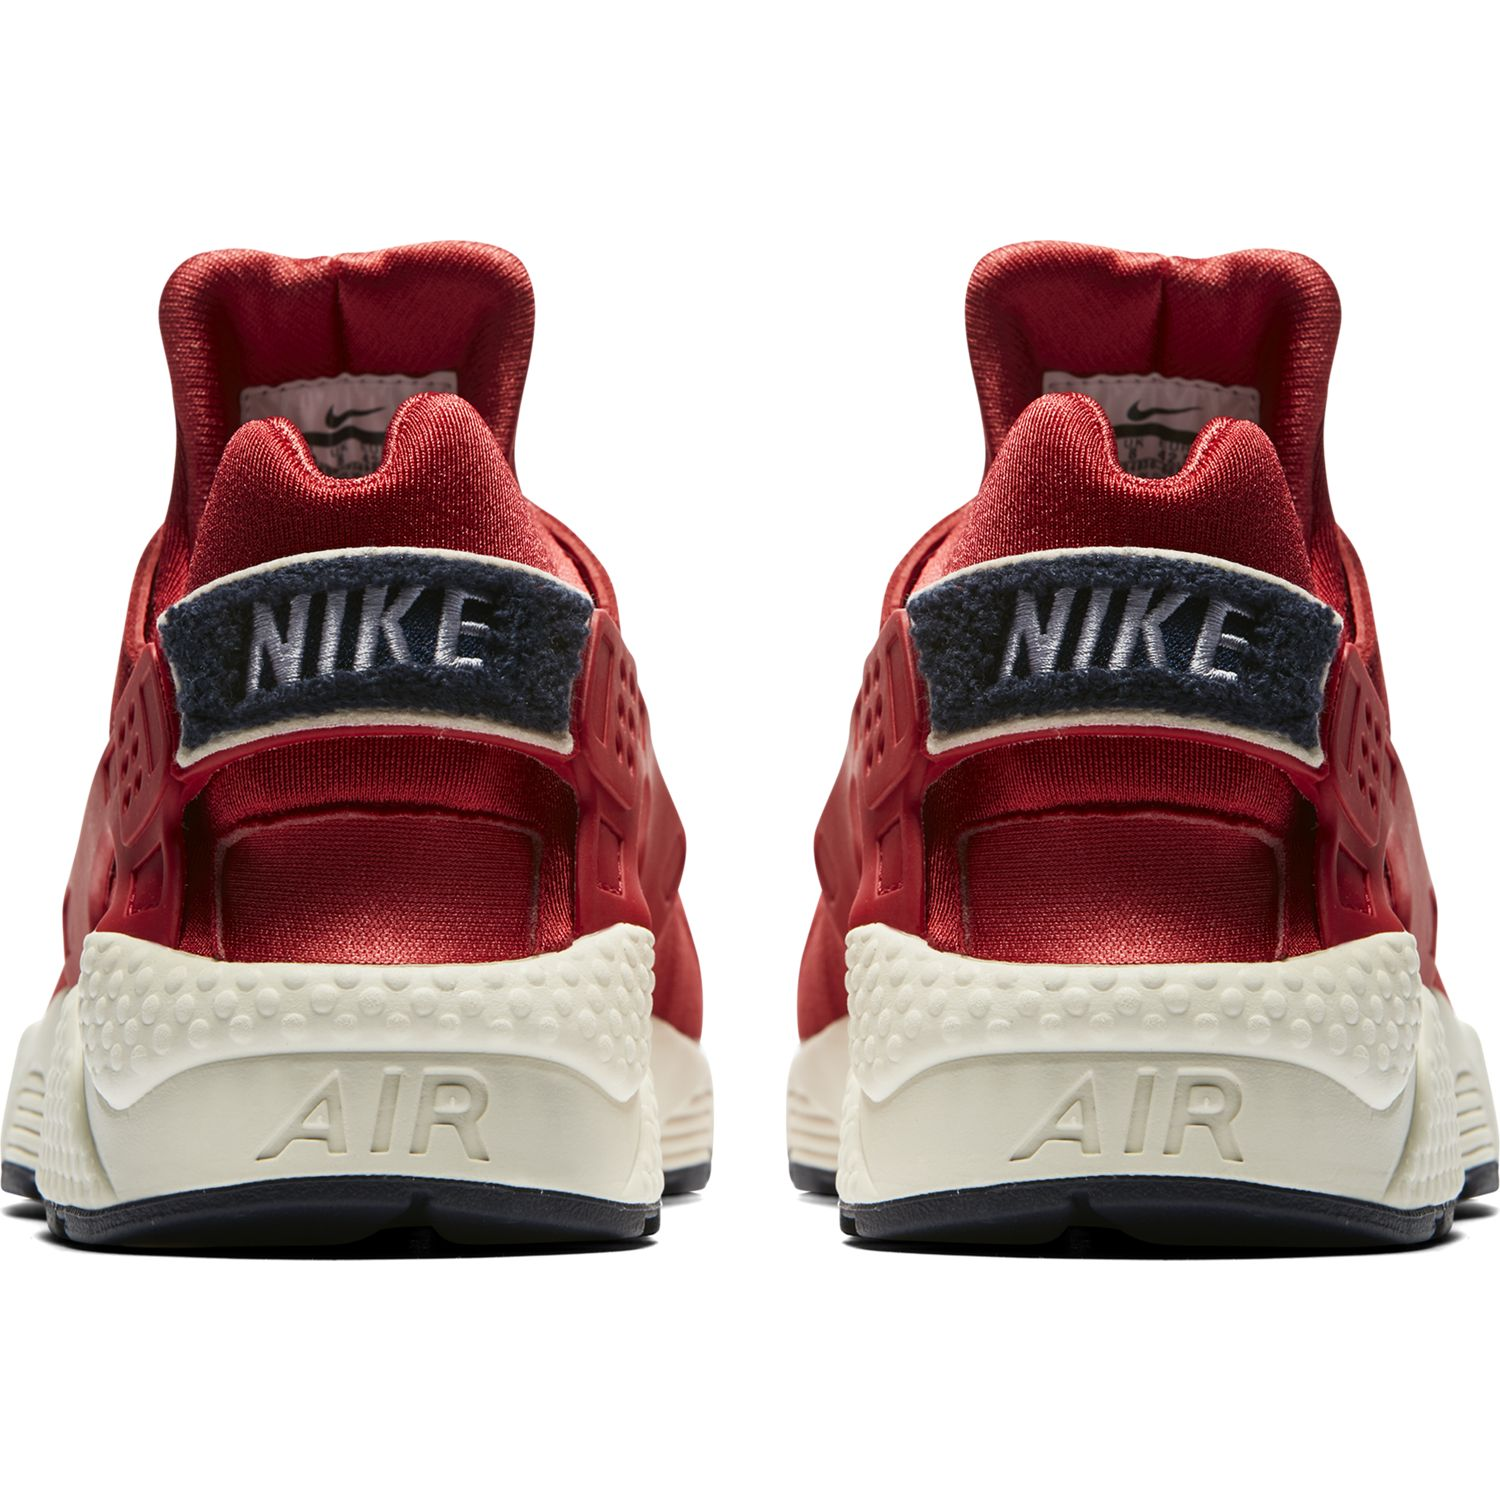 quite nice 817bb cf9f9 ... promo code for nike air huarache run premium university red 704830 602  click to zoom 4b652